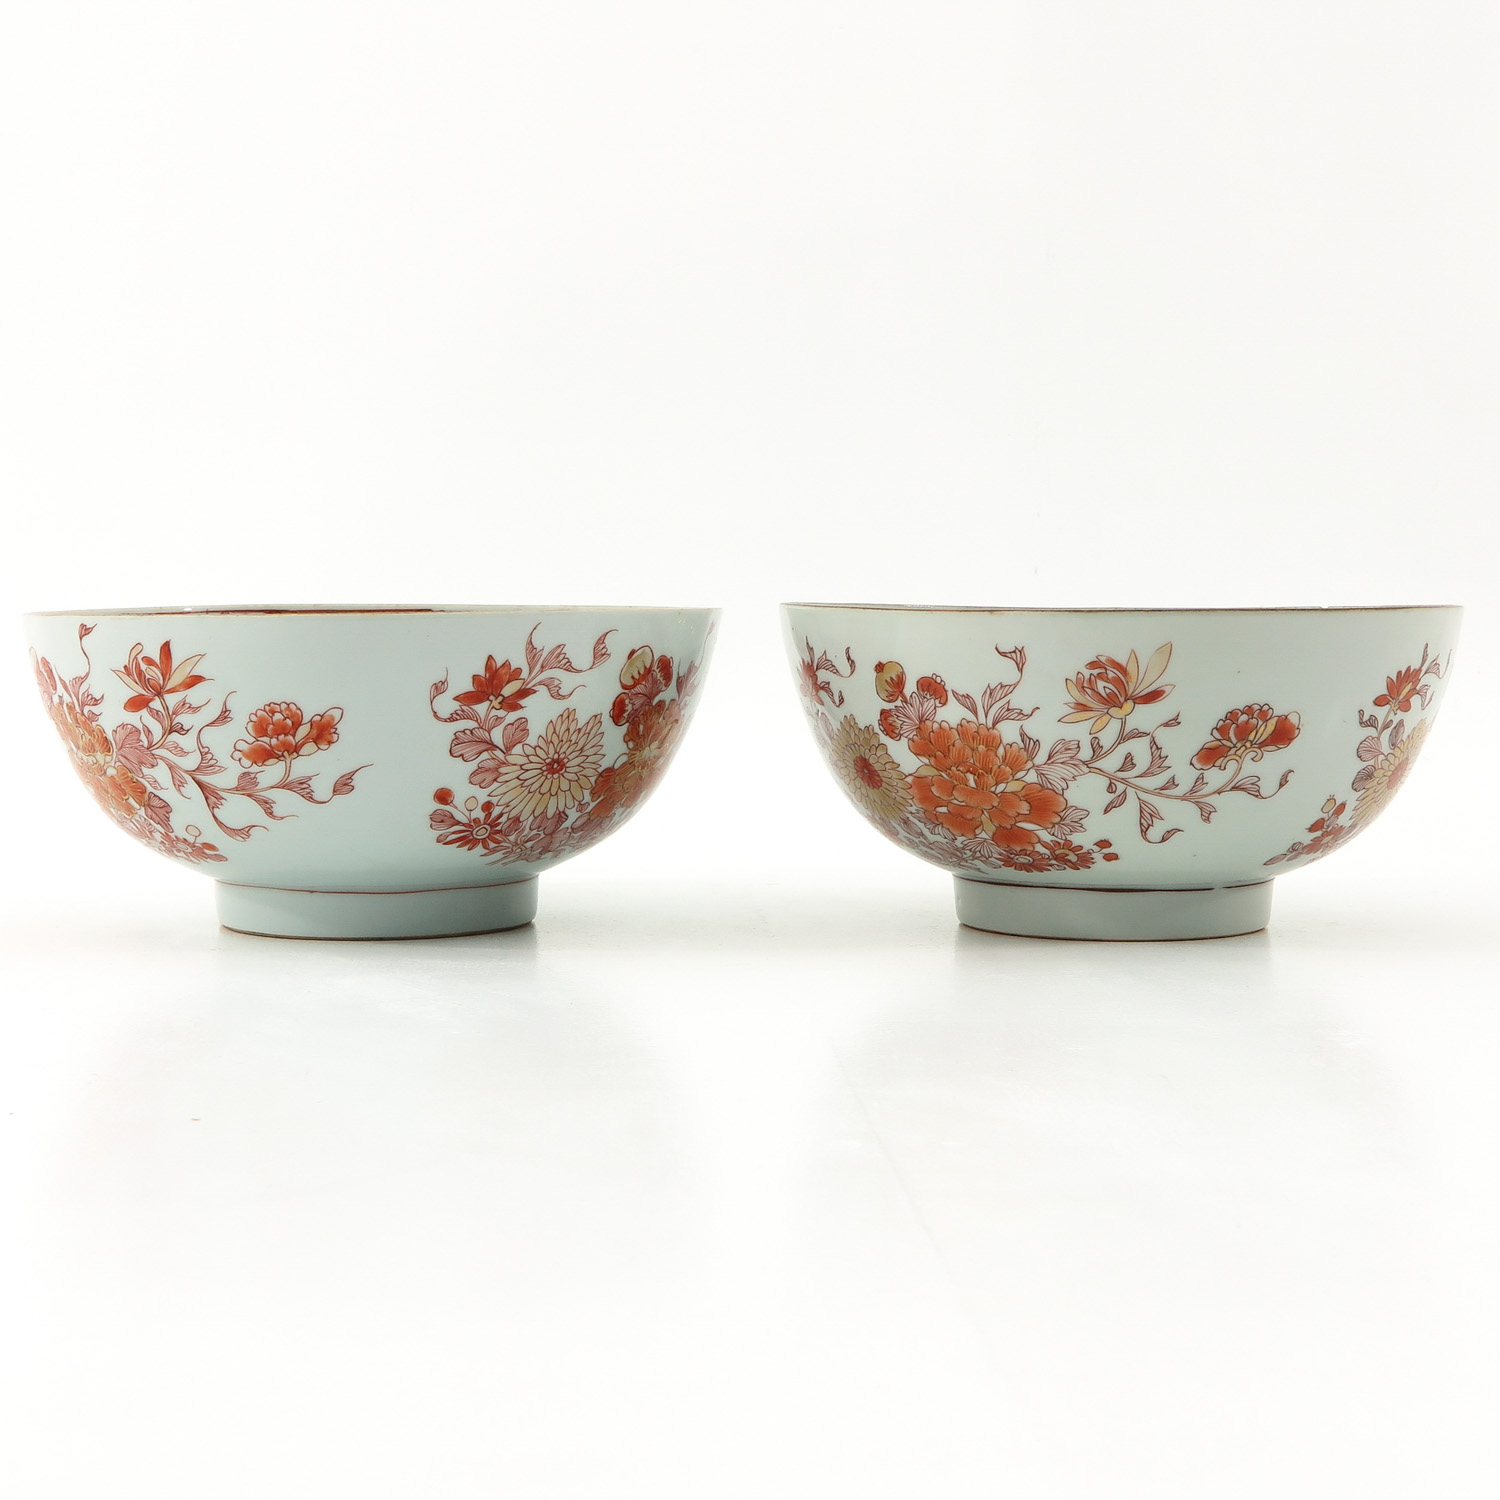 A Pair of Milk and Blood Decor Bowls - Image 3 of 9